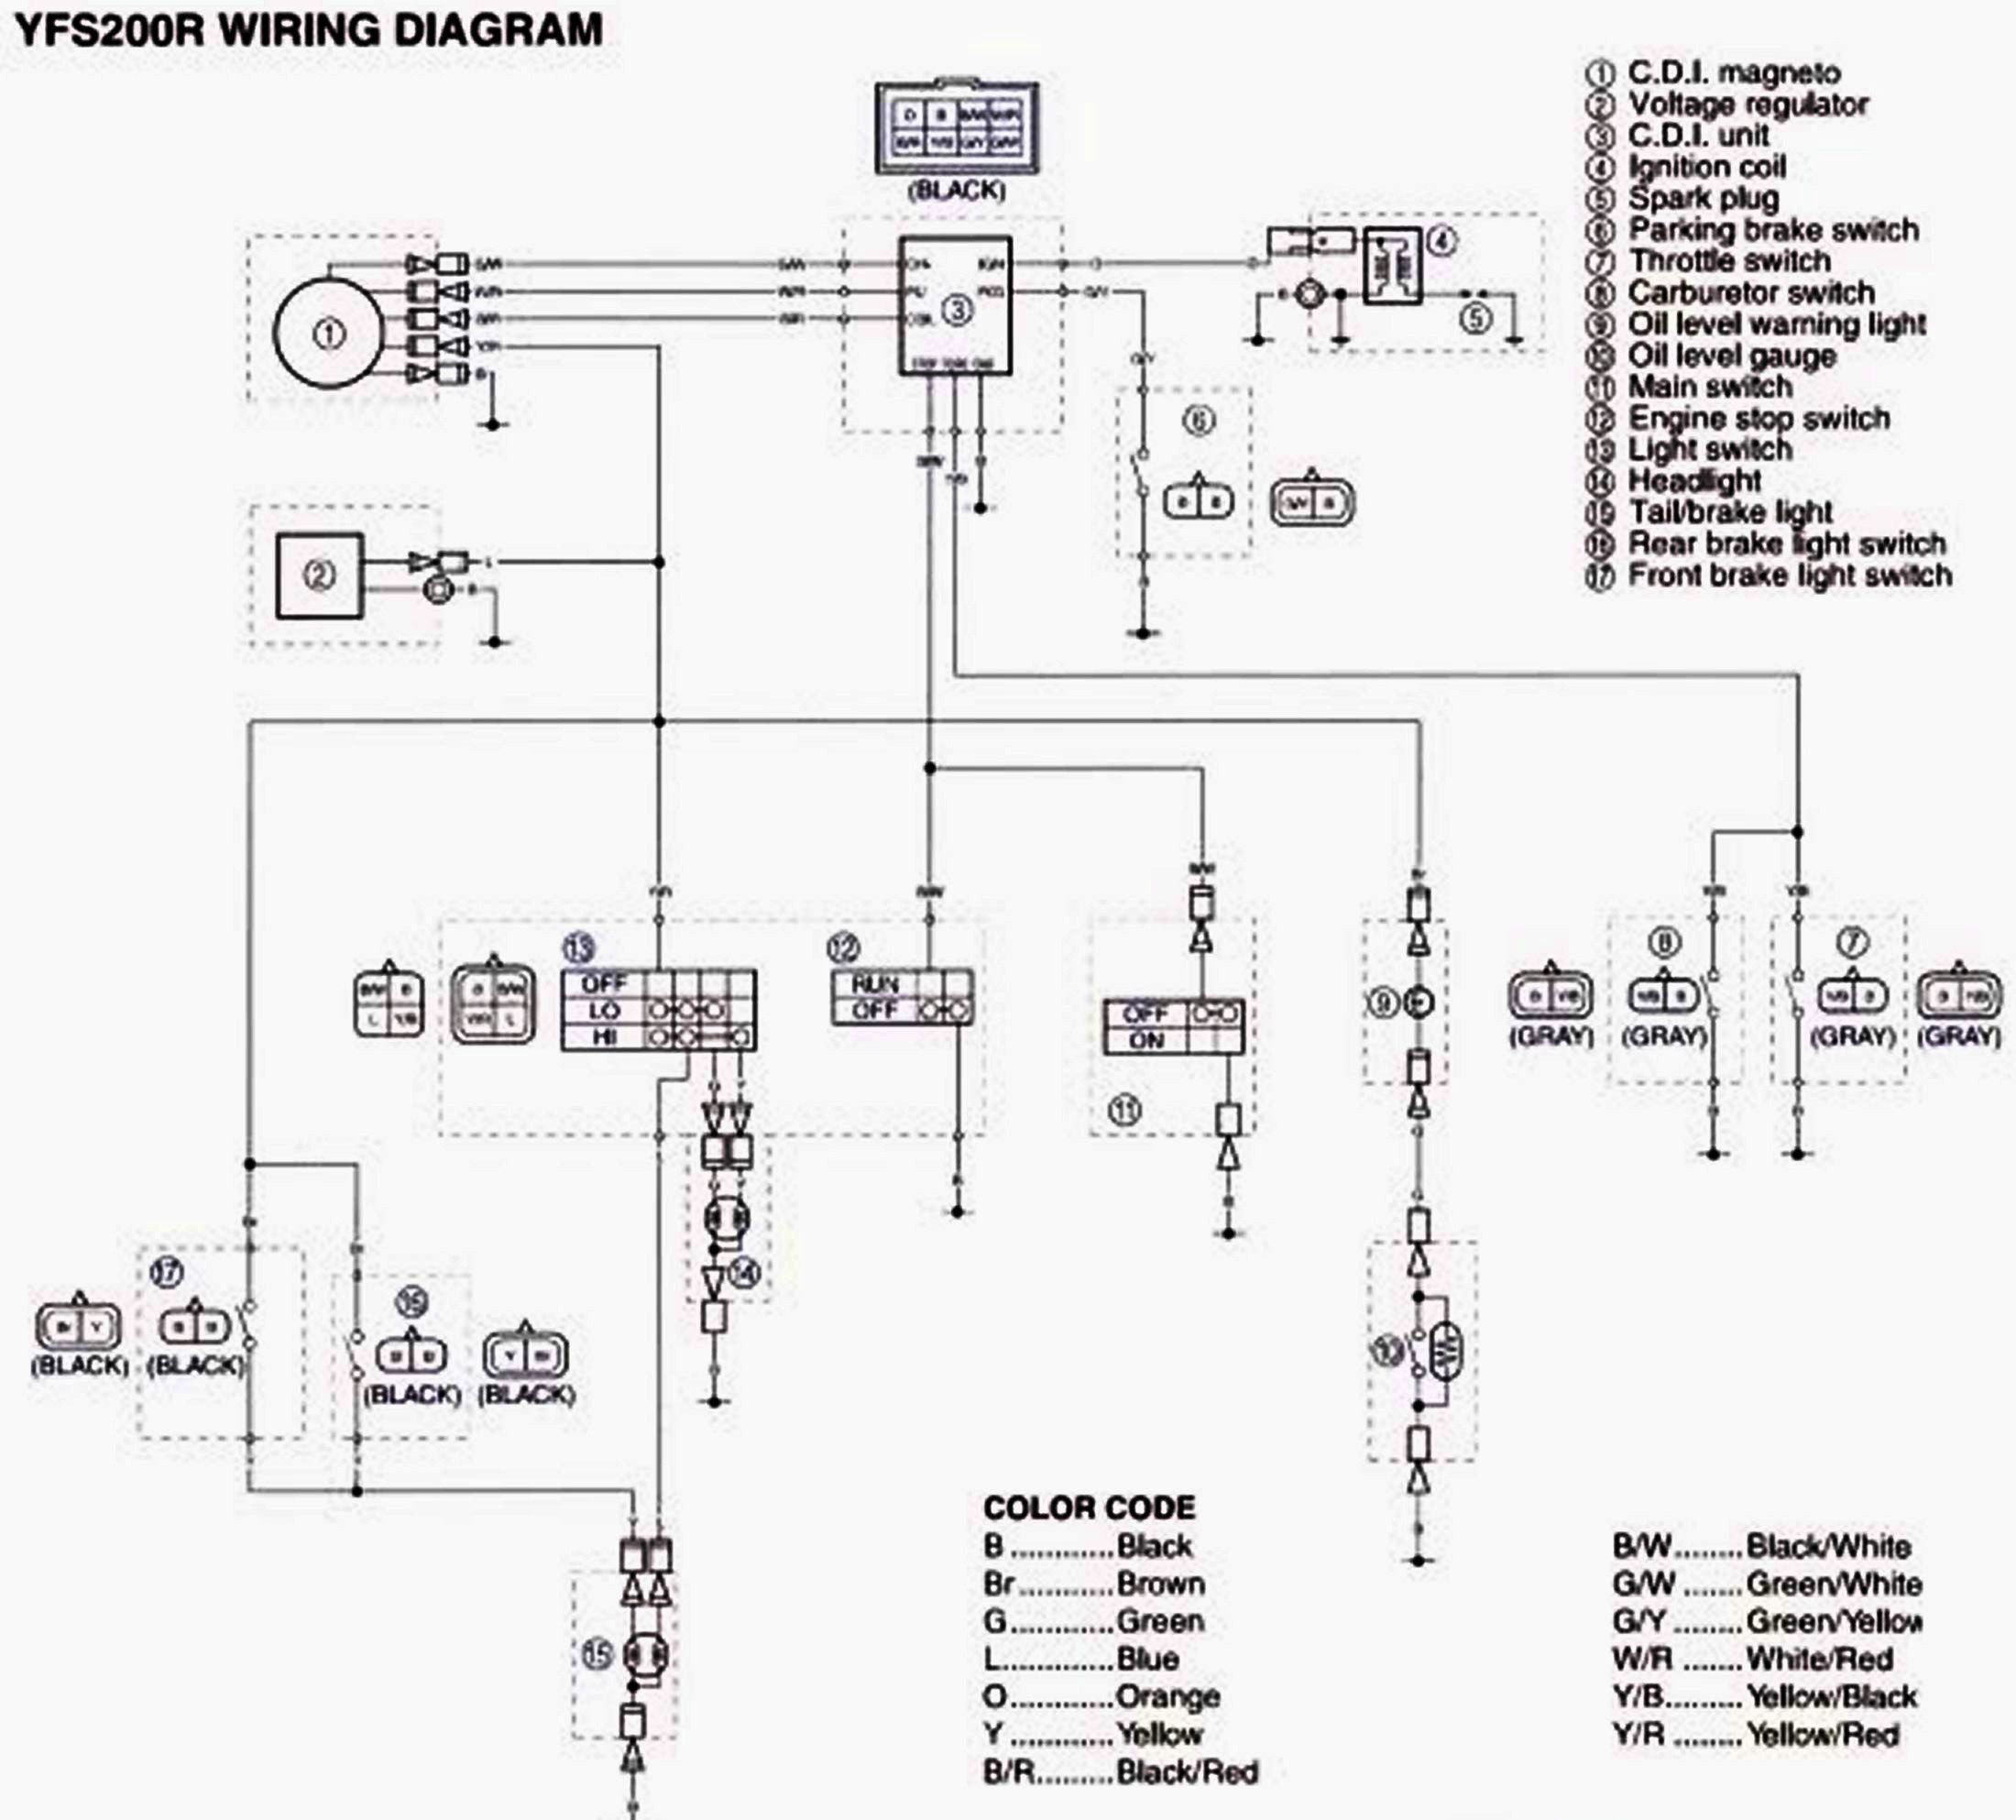 Wiring Diagram 2004 Wr450f - 2004 Nissan Stereo Wiring Diagram for Wiring  Diagram SchematicsWiring Diagram Schematics